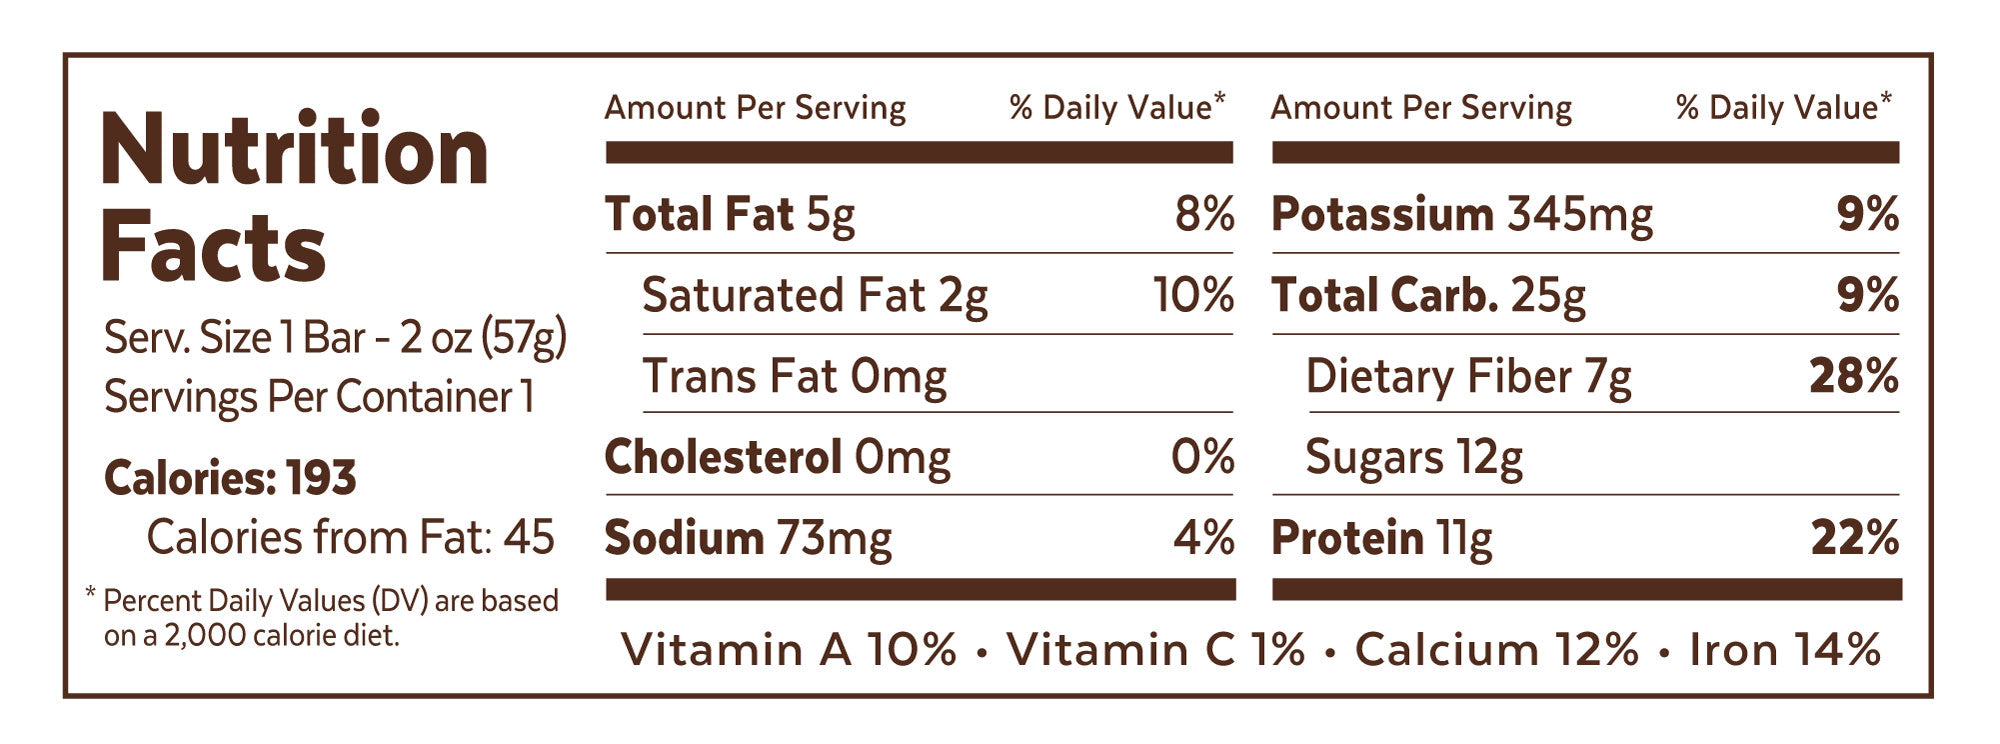 Grab The Gold - 1 Bar Nutrition Facts - PBJ